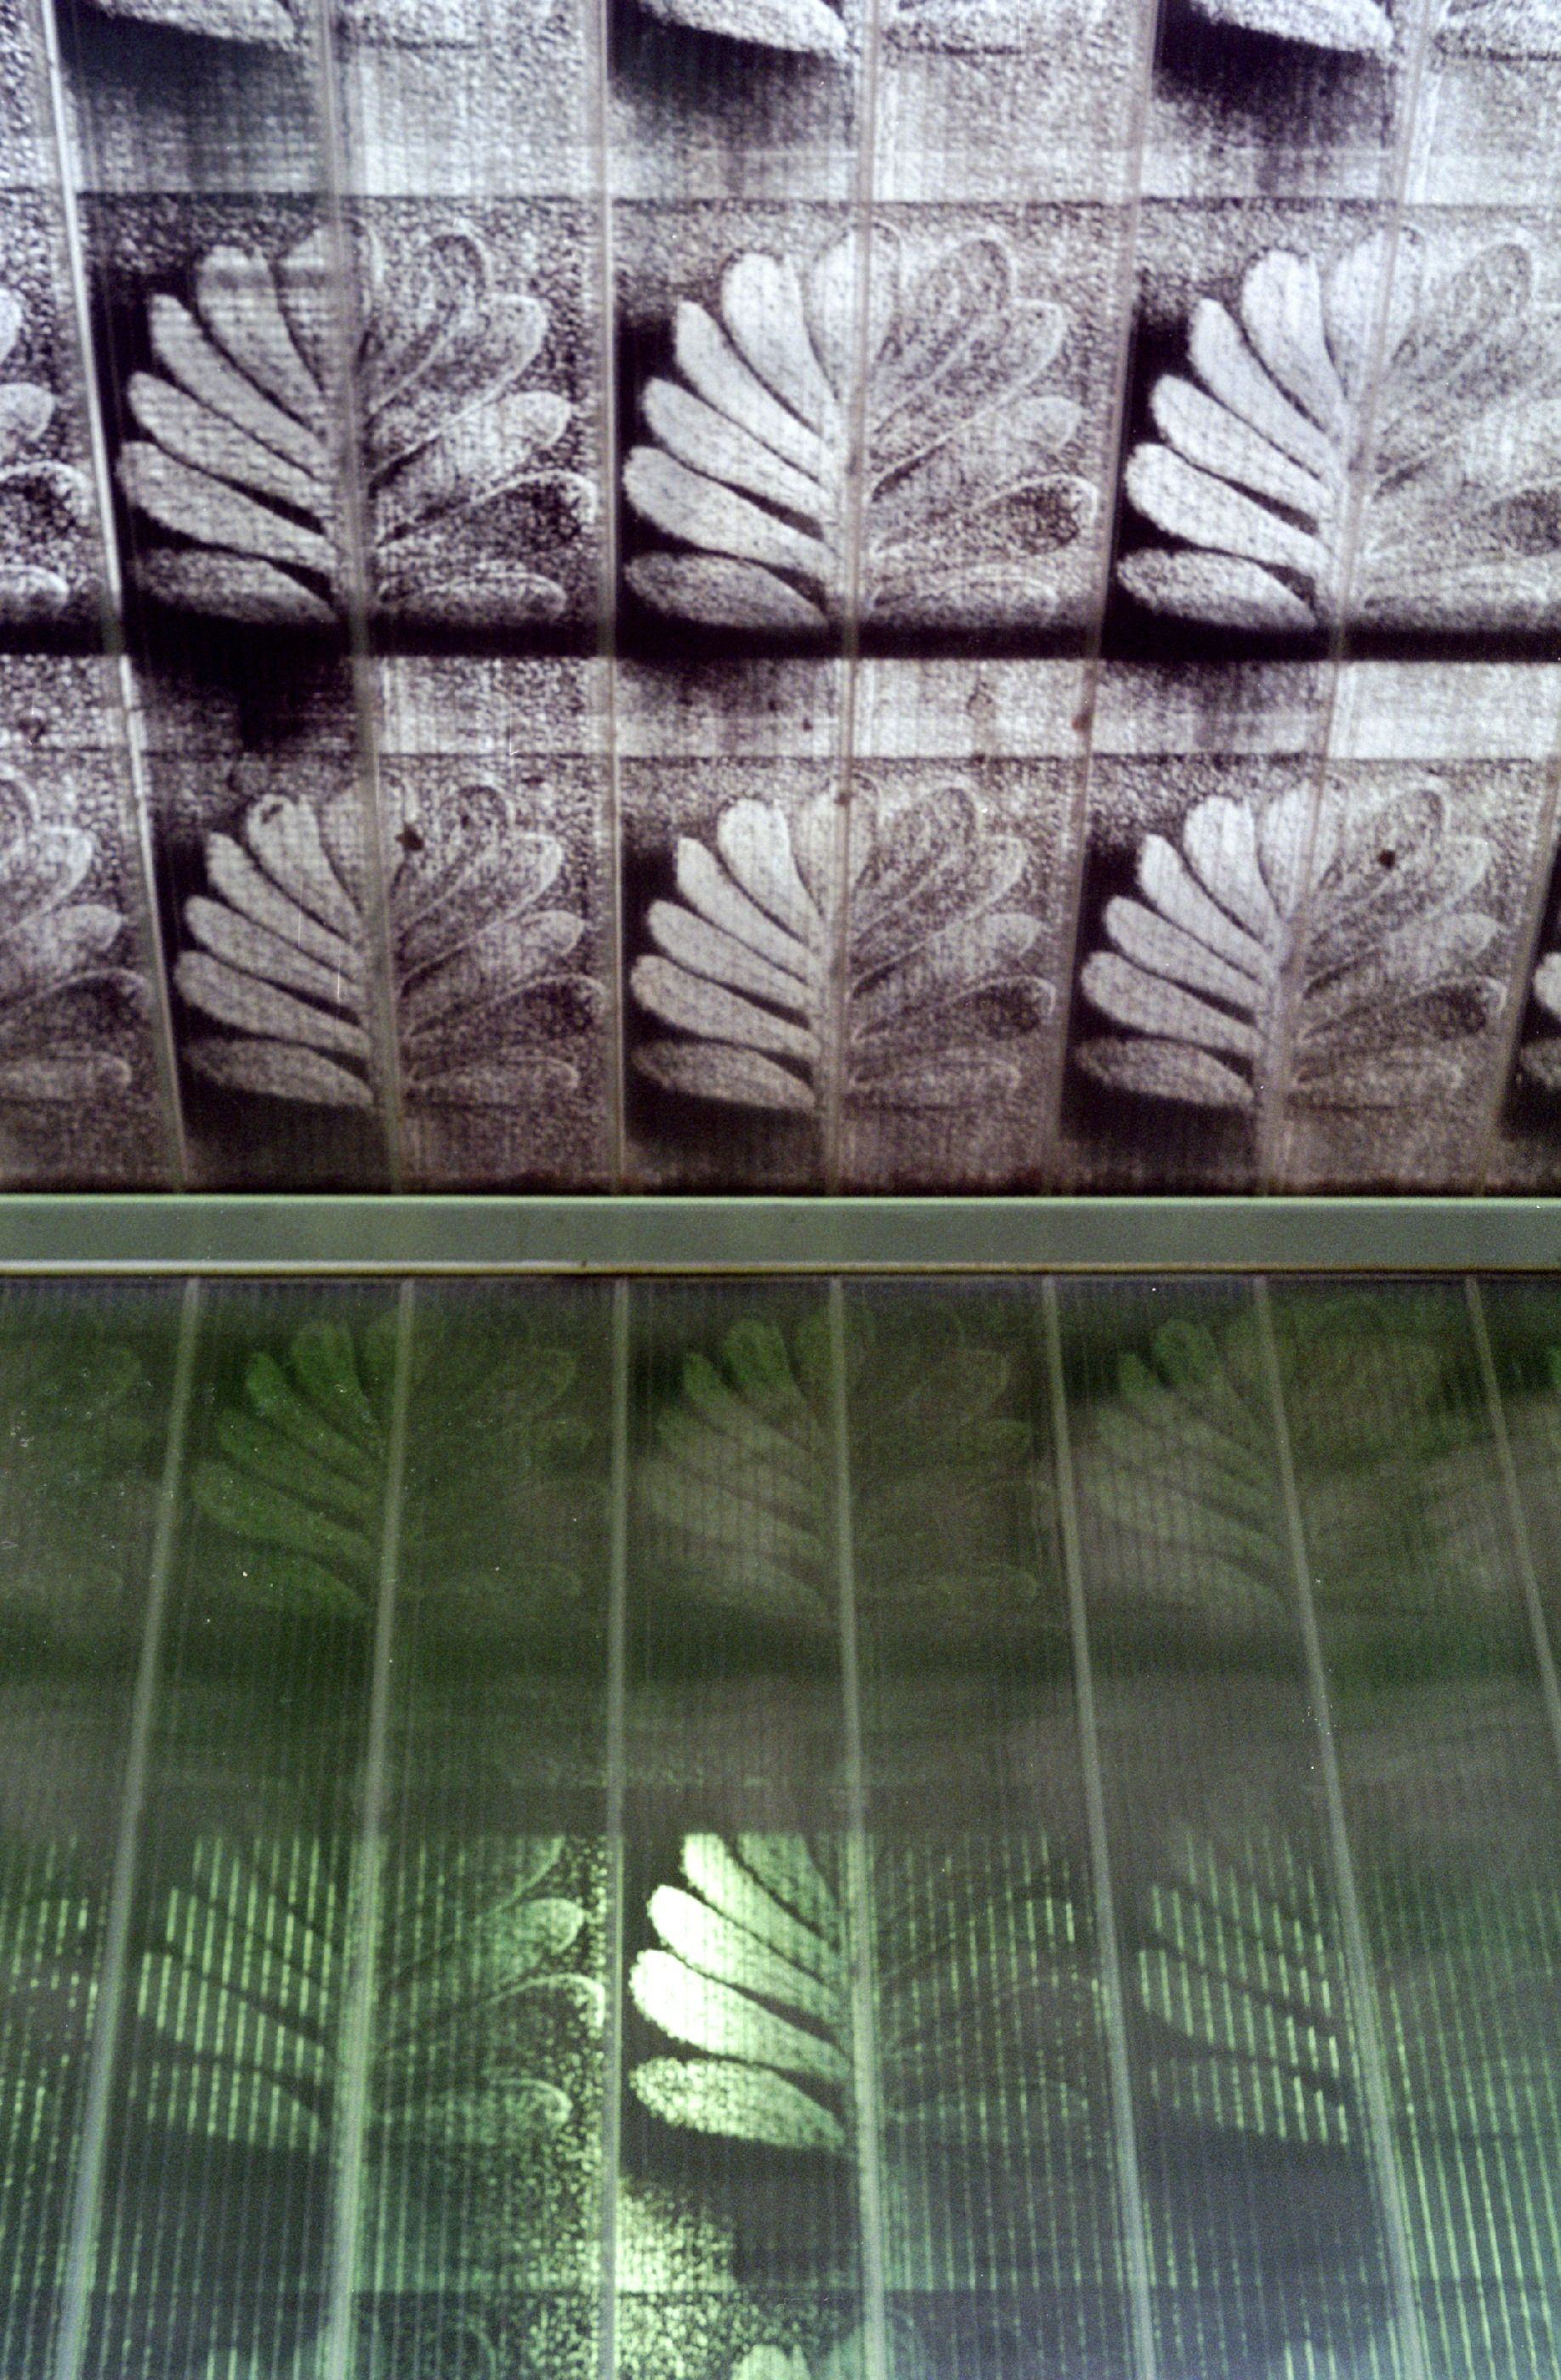 Motif design printed on translucent polycarbonate panels taken from photography of Karl Blossfeldt of the 1920s.  Designed by Herzog & de Meuron and featured on their Ricola Europe SA Factory building in Mulhouse-Brunstatt, France.  Creates a beautiful effect!